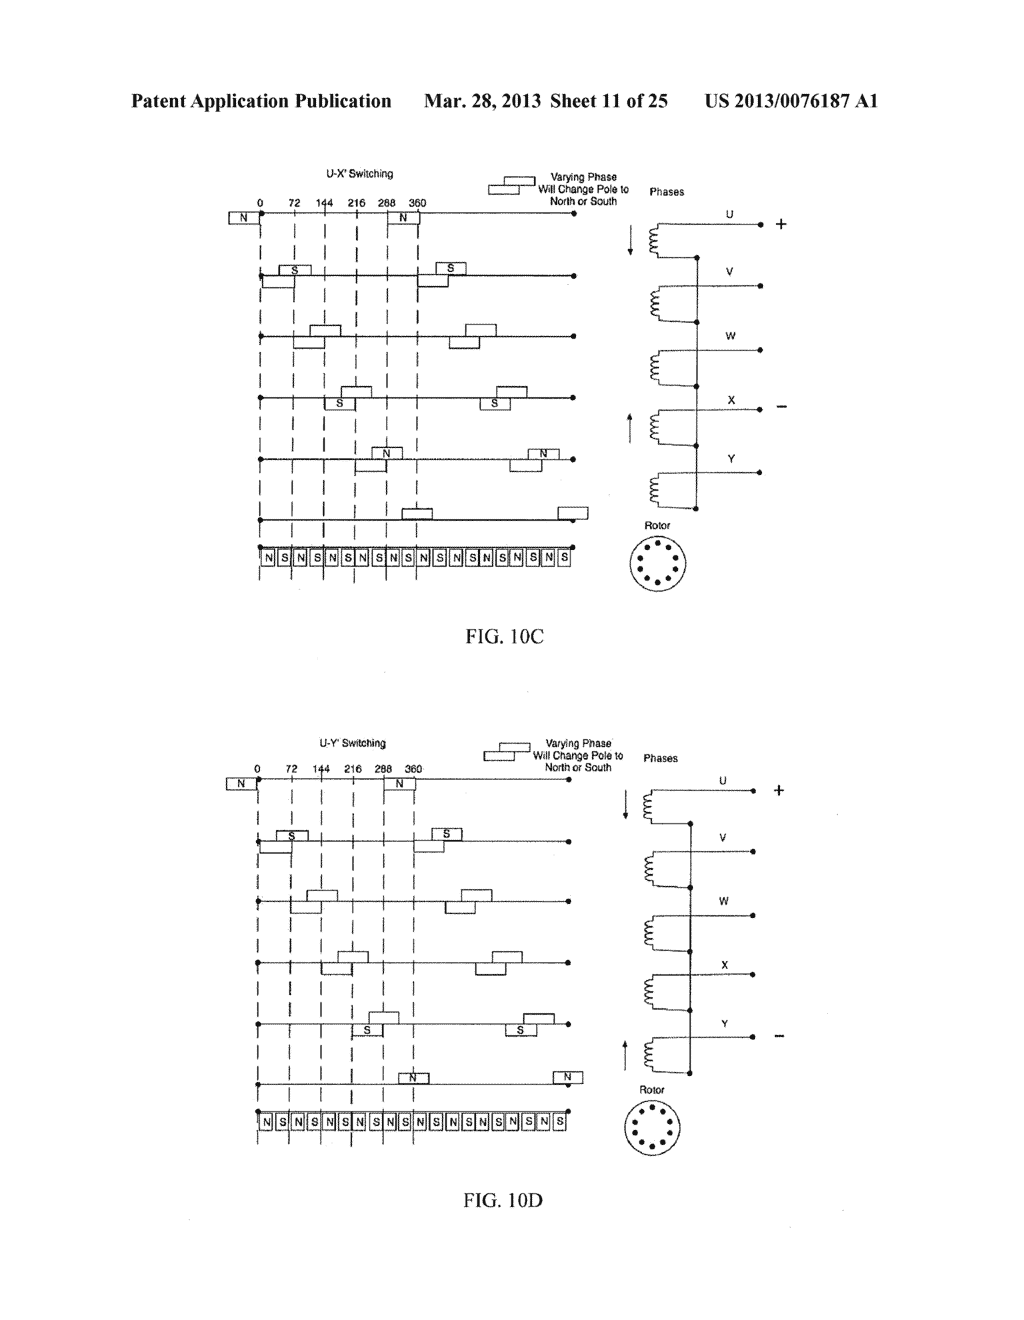 5 Phase Alternating Current Induction Motor And Inverter System Diagram An Schematic Image 12